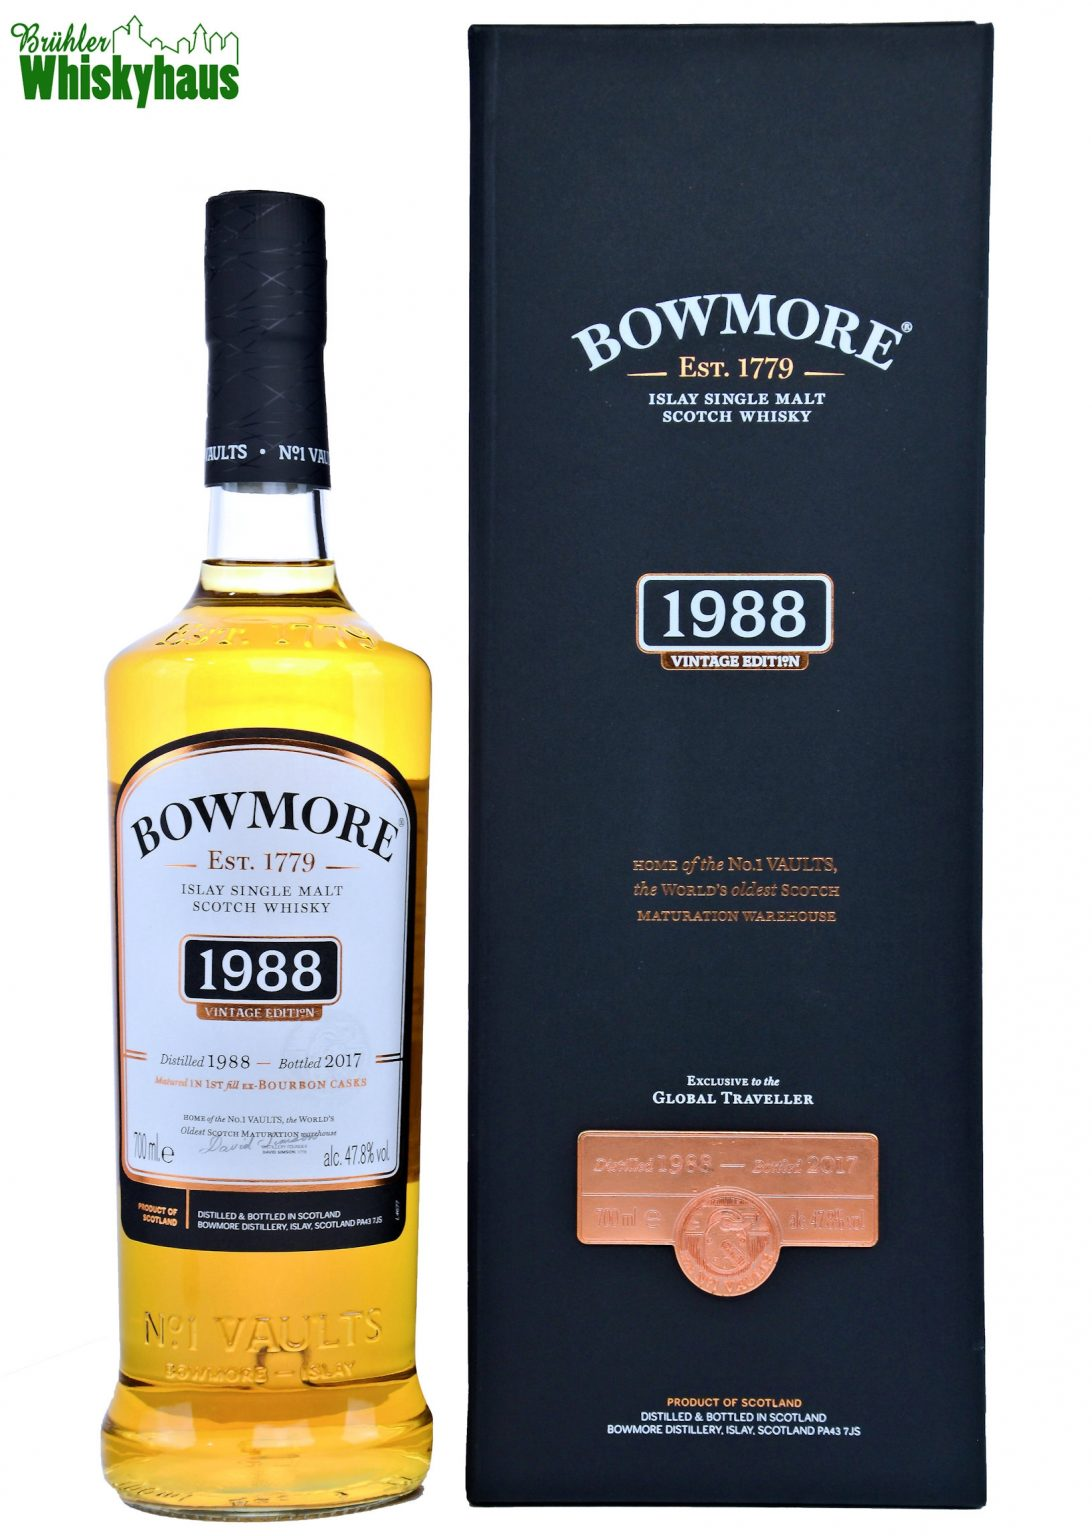 Bowmore Vintage 1988 - 29 Jahre - First Fill Ex-Bourbon Cask - Single Malt Scotch Whisky